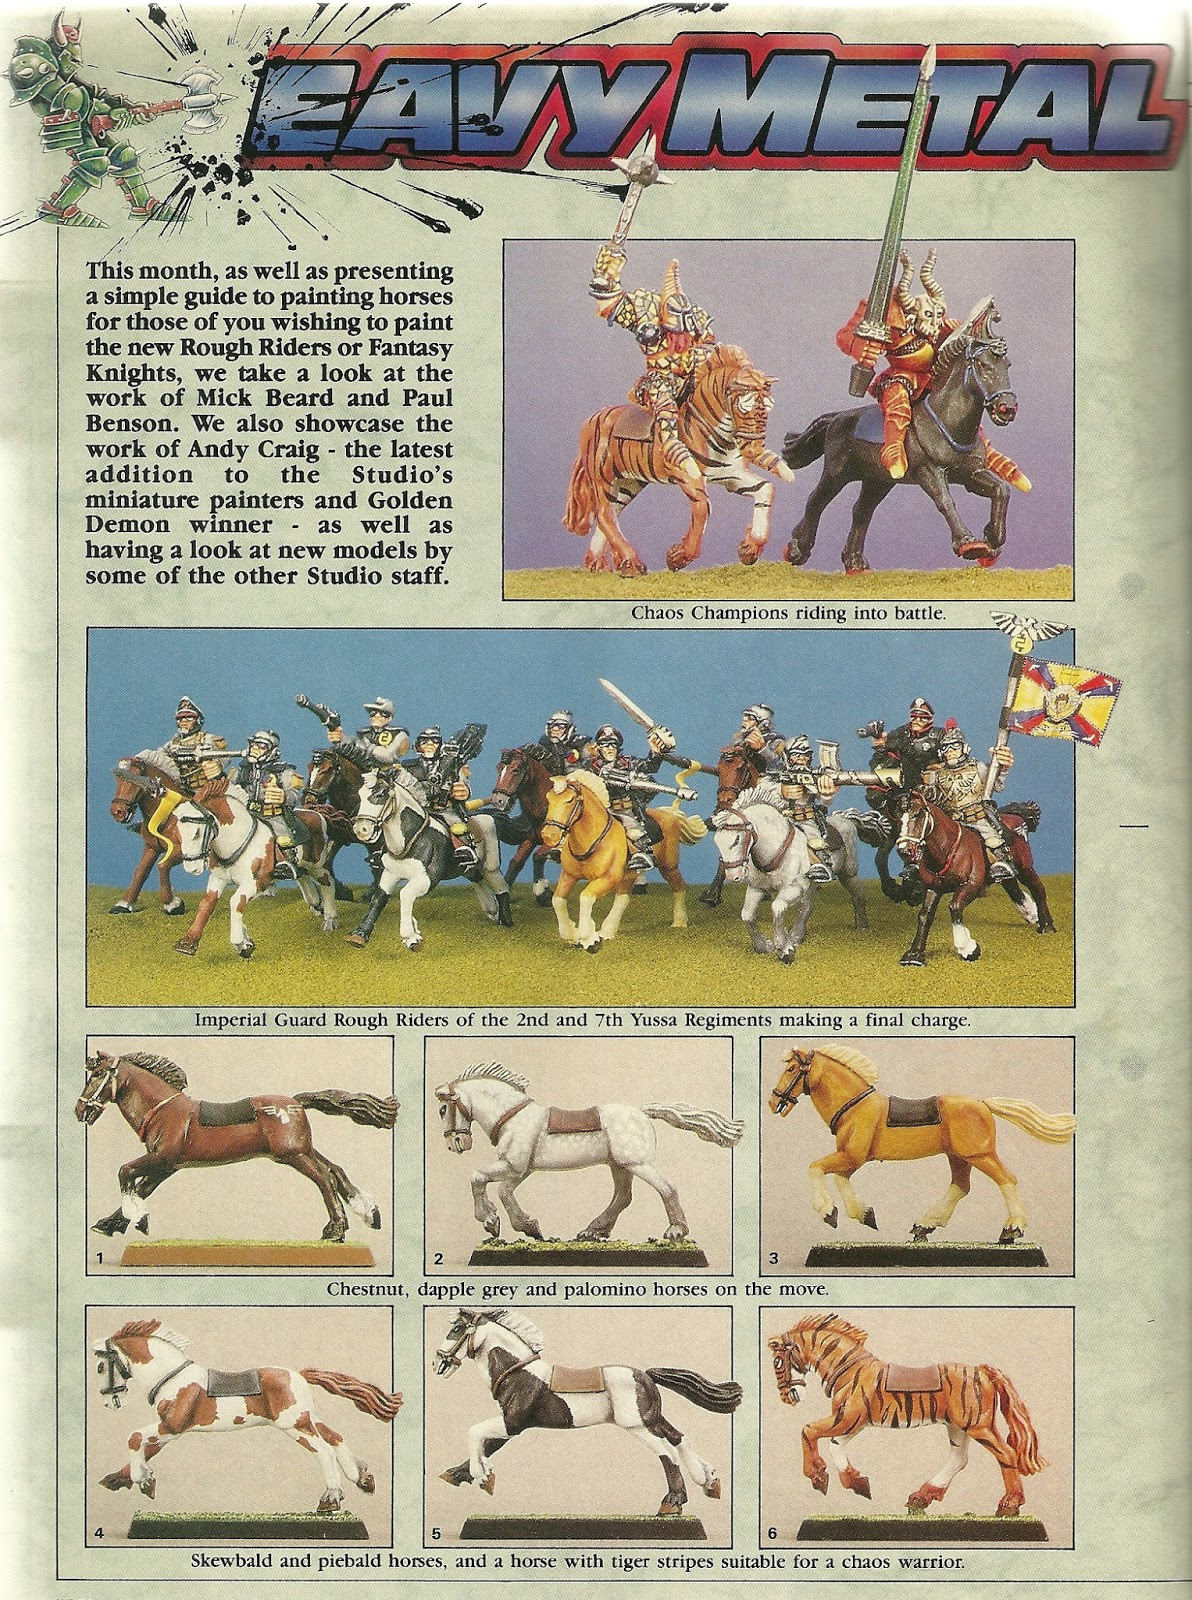 Citadel's new plastic horses were also showcased with a brief guide to  painting them here.